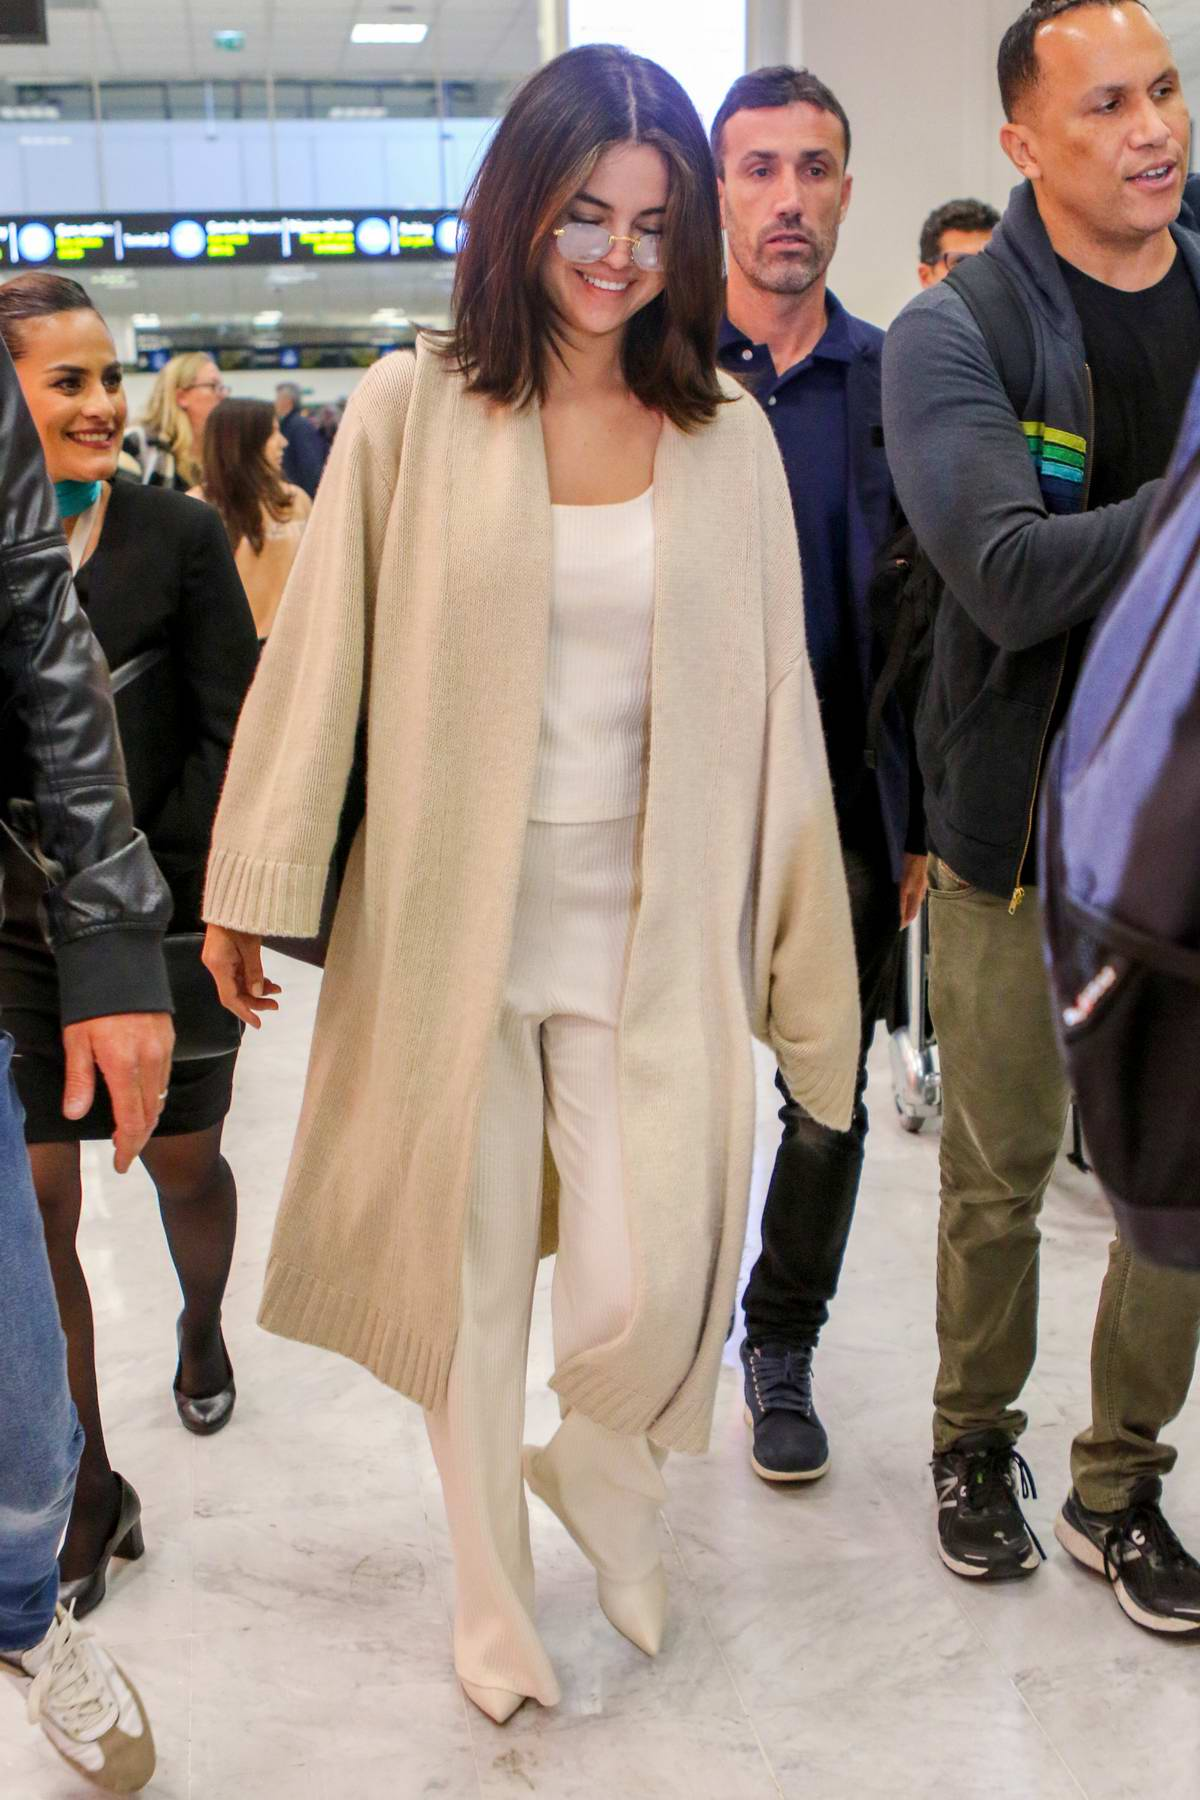 Selena Gomez is all smiles as she arrives at Nice airport ahead of the 72nd Cannes Film Festival , France